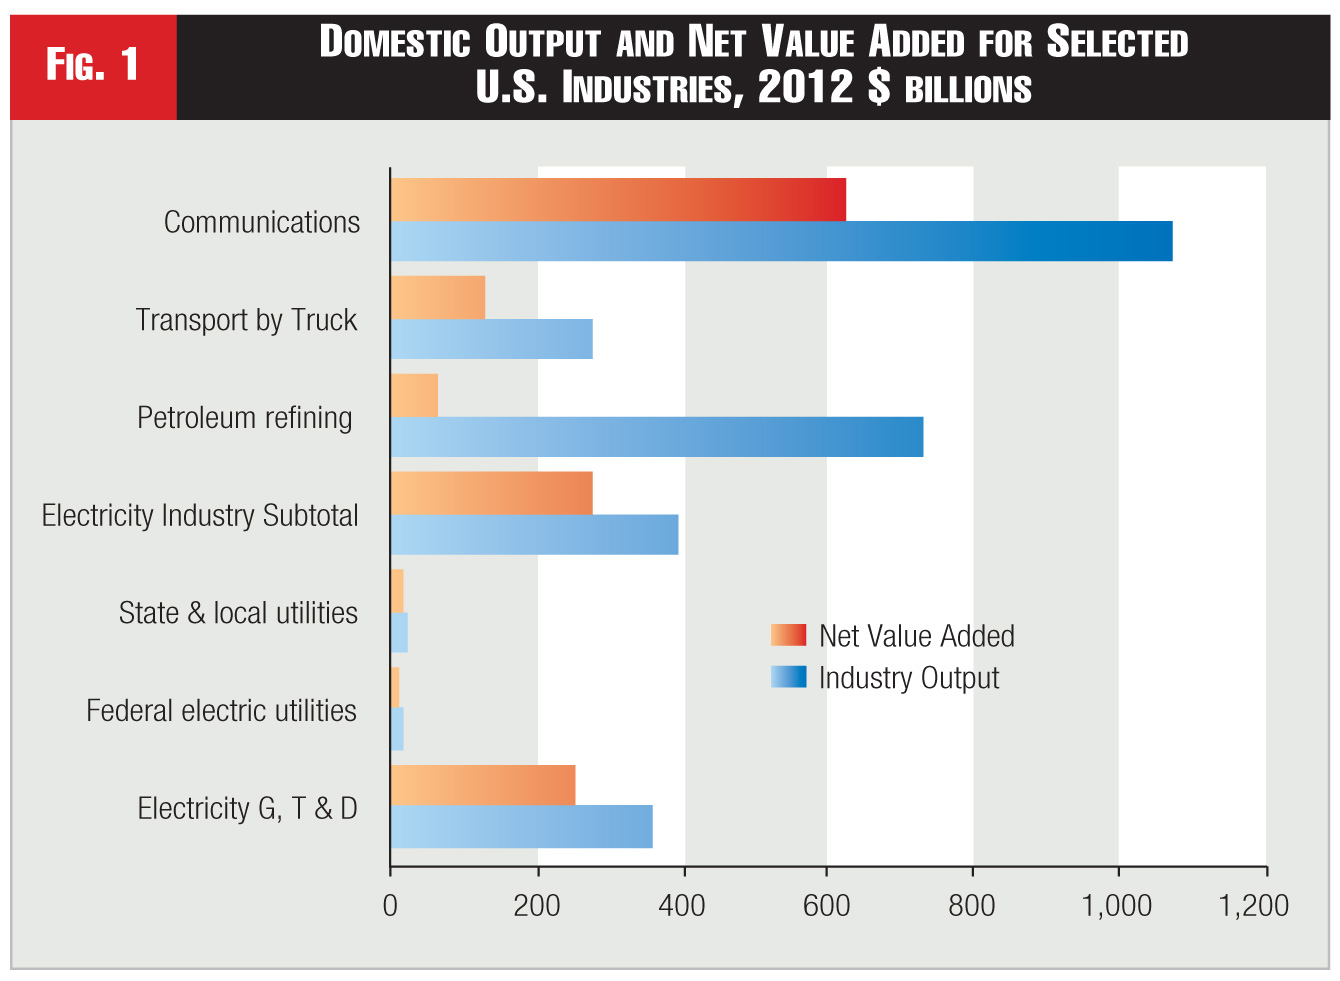 figure 1 - Domestic Output and Net Value Added for Selected U.S. Industries, 2012 $ billions